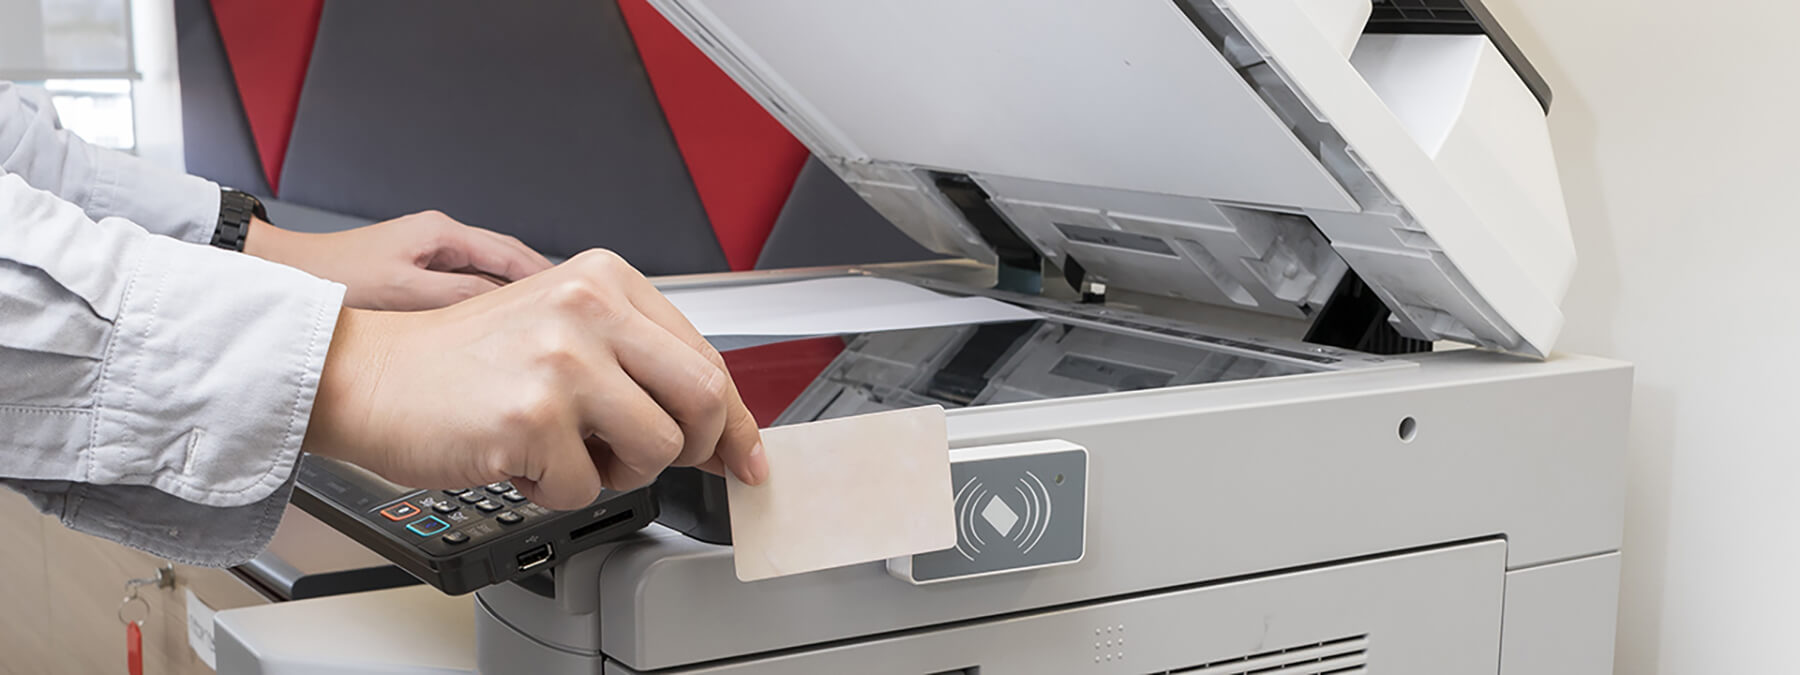 an employee printing securely using their key card